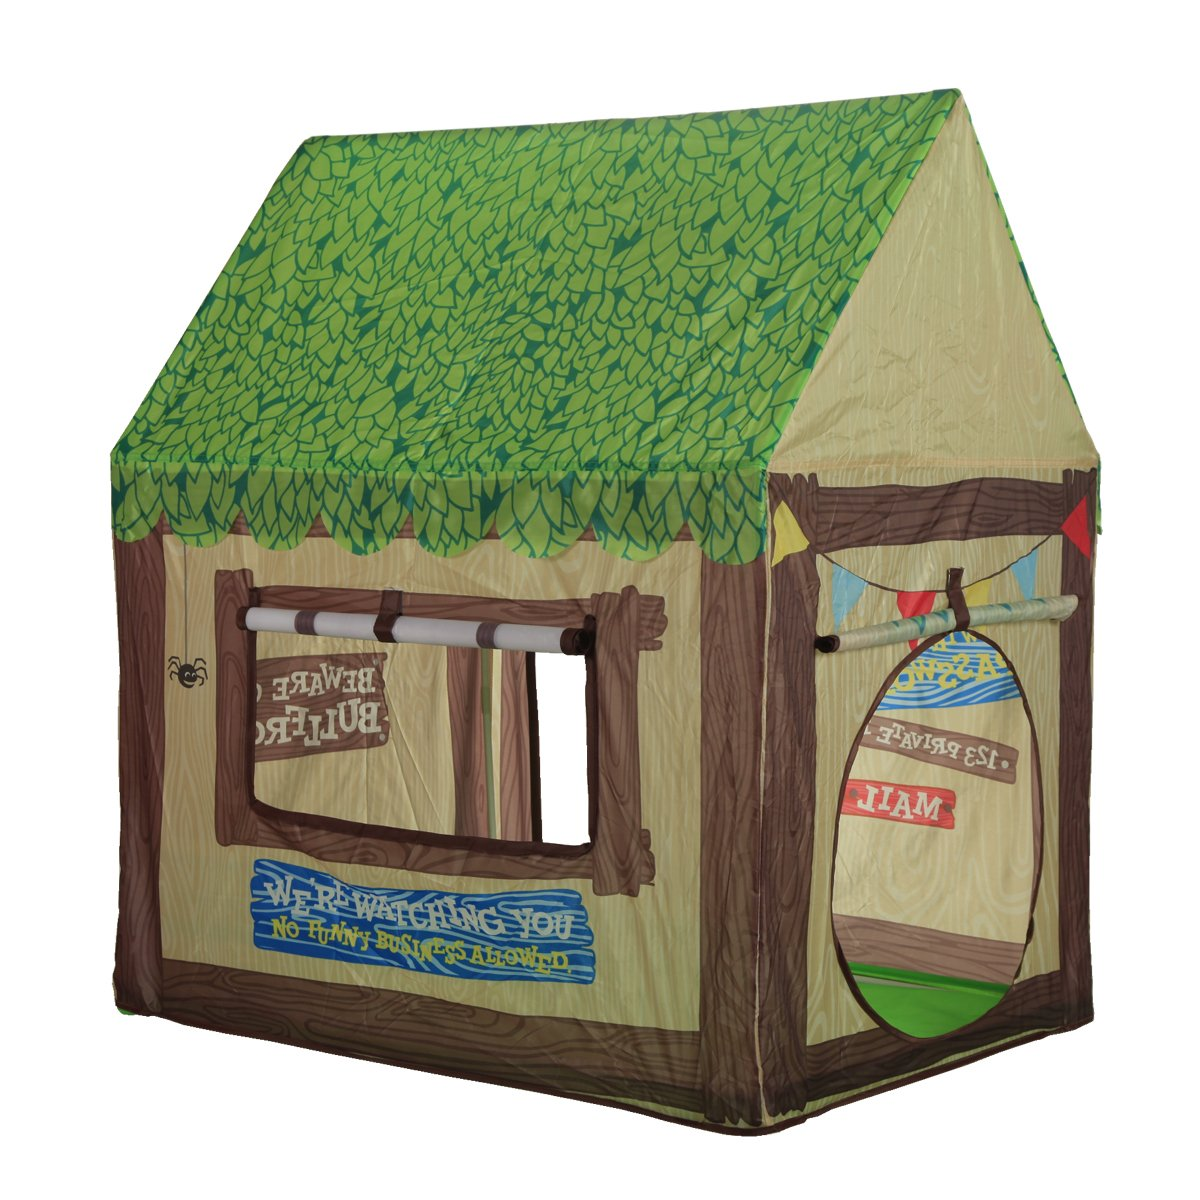 Kids Play Tent Children Playhouse - Indoor Outdoor Tent Model Clubhouse Green Portable by K-F Decorations Ltd.